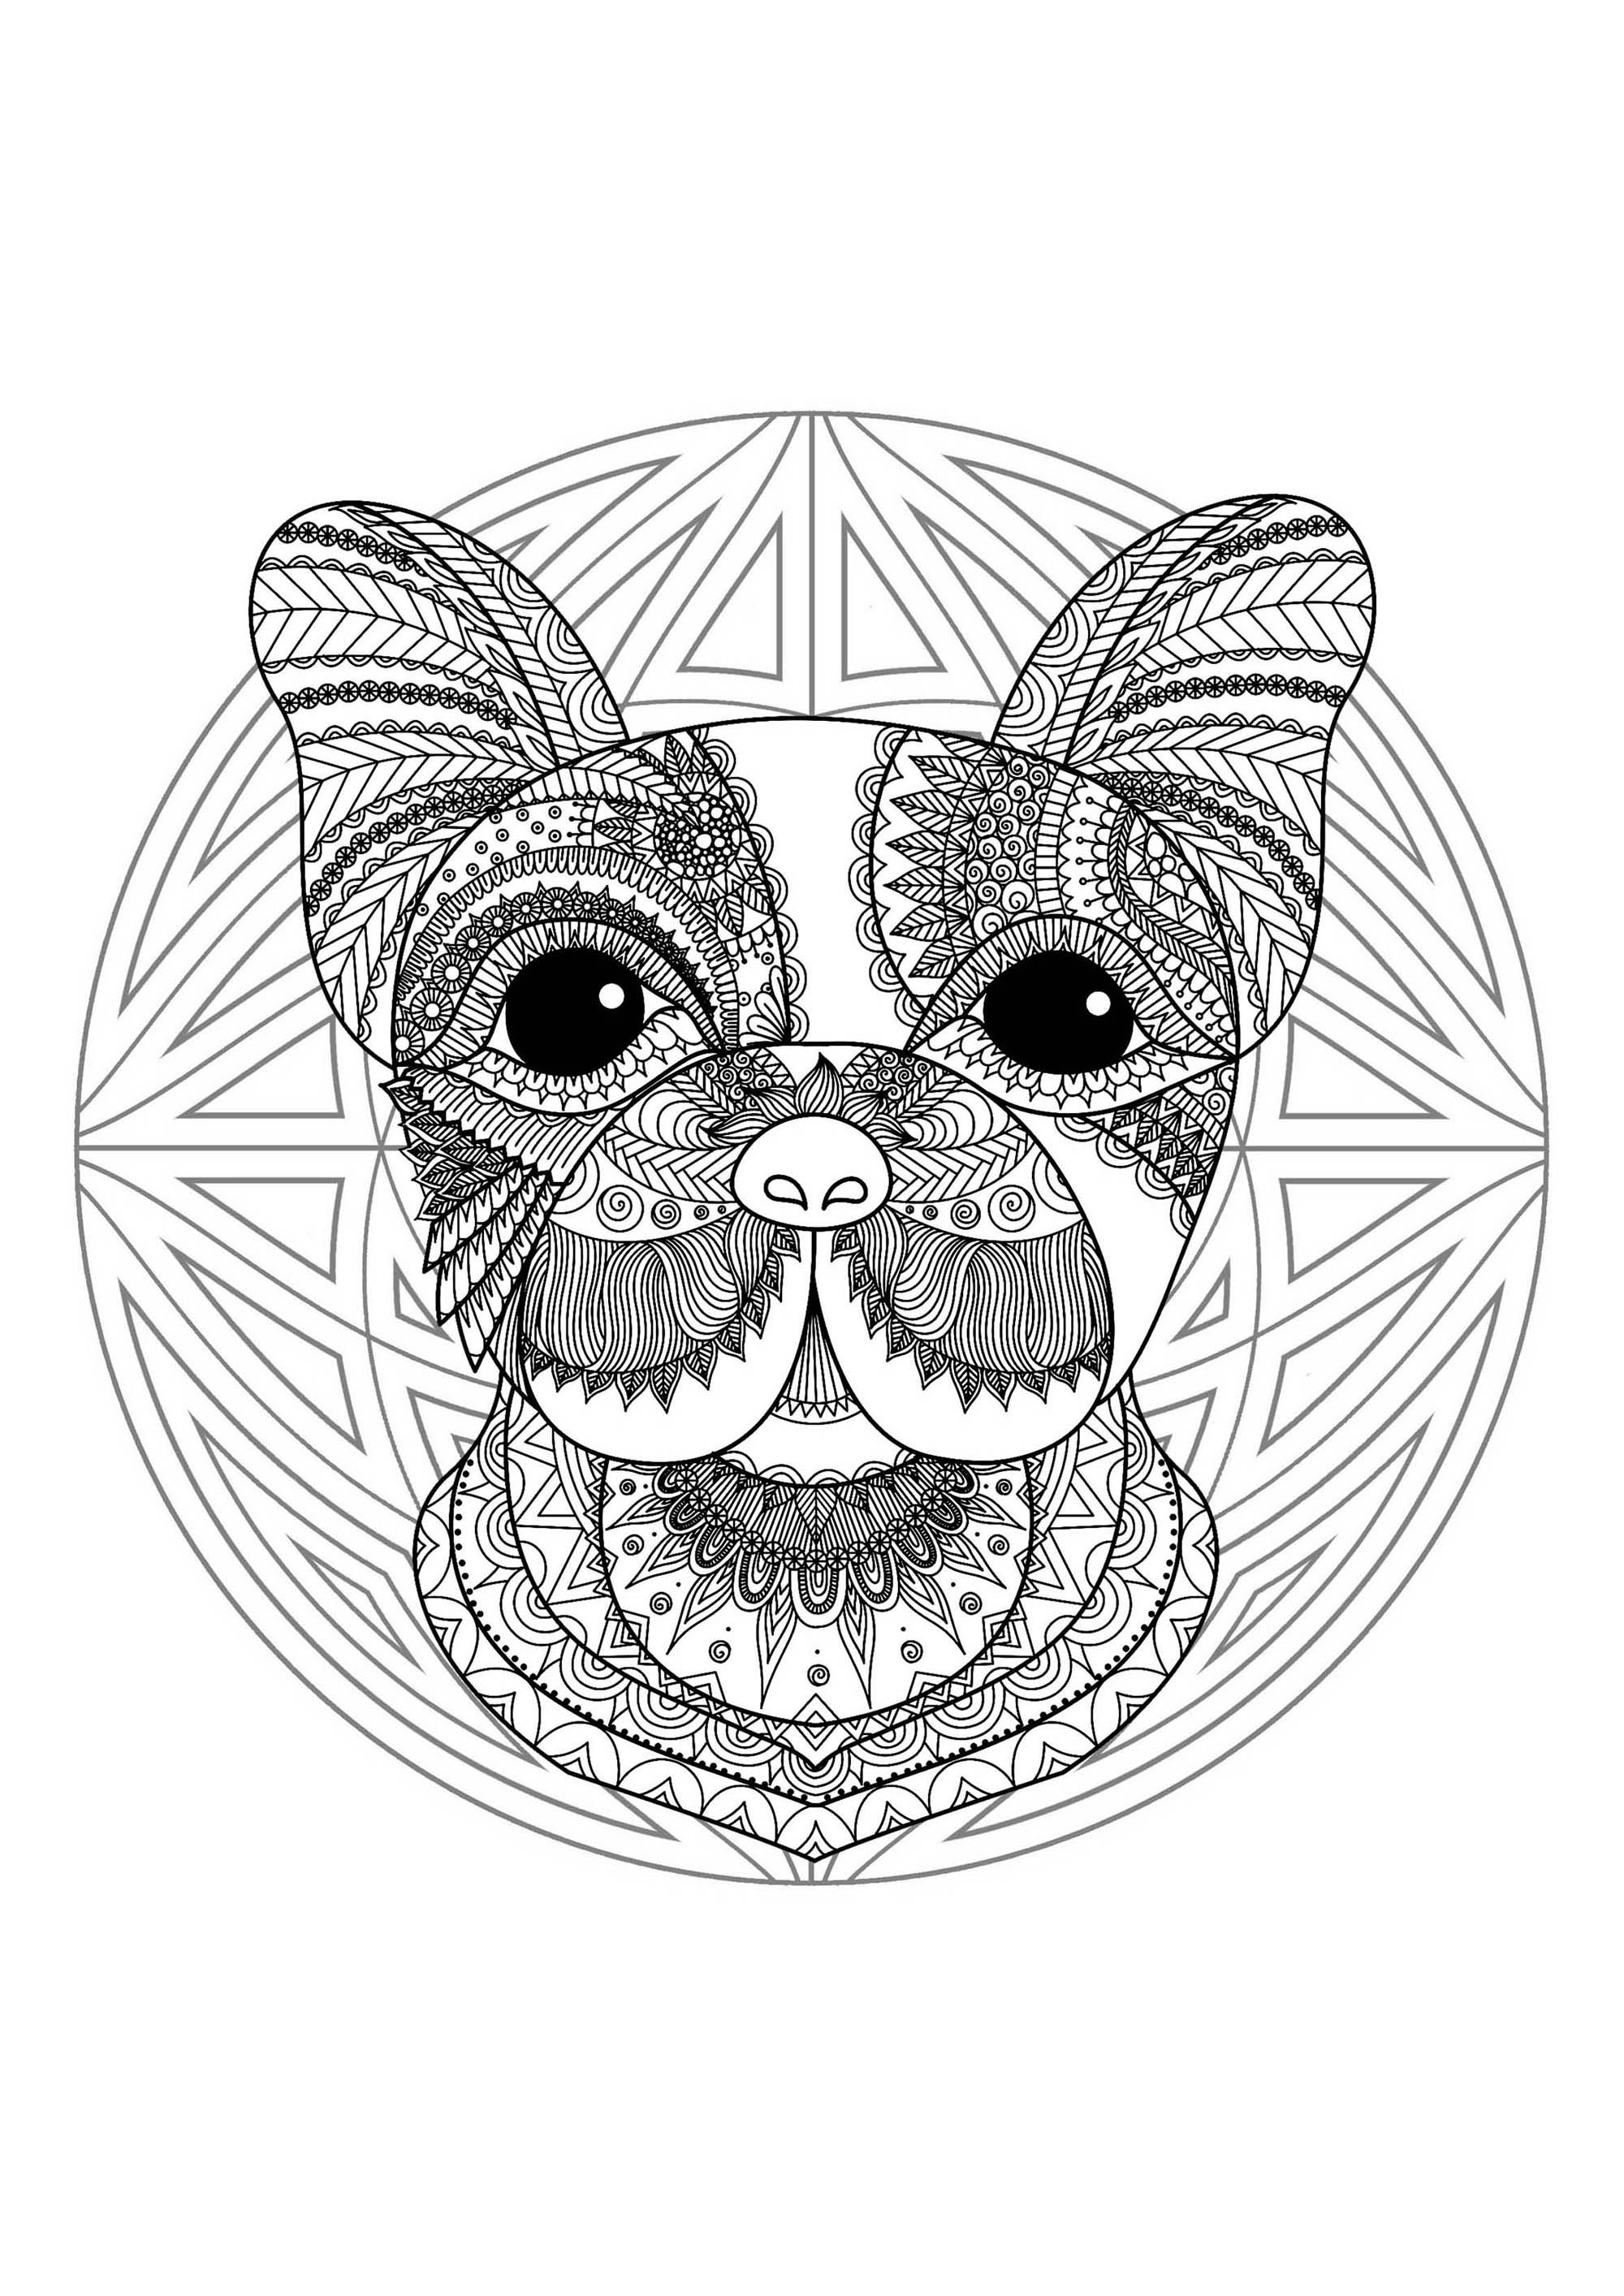 Complex mandala coloring page cute little dog head 2, cute coloring pages